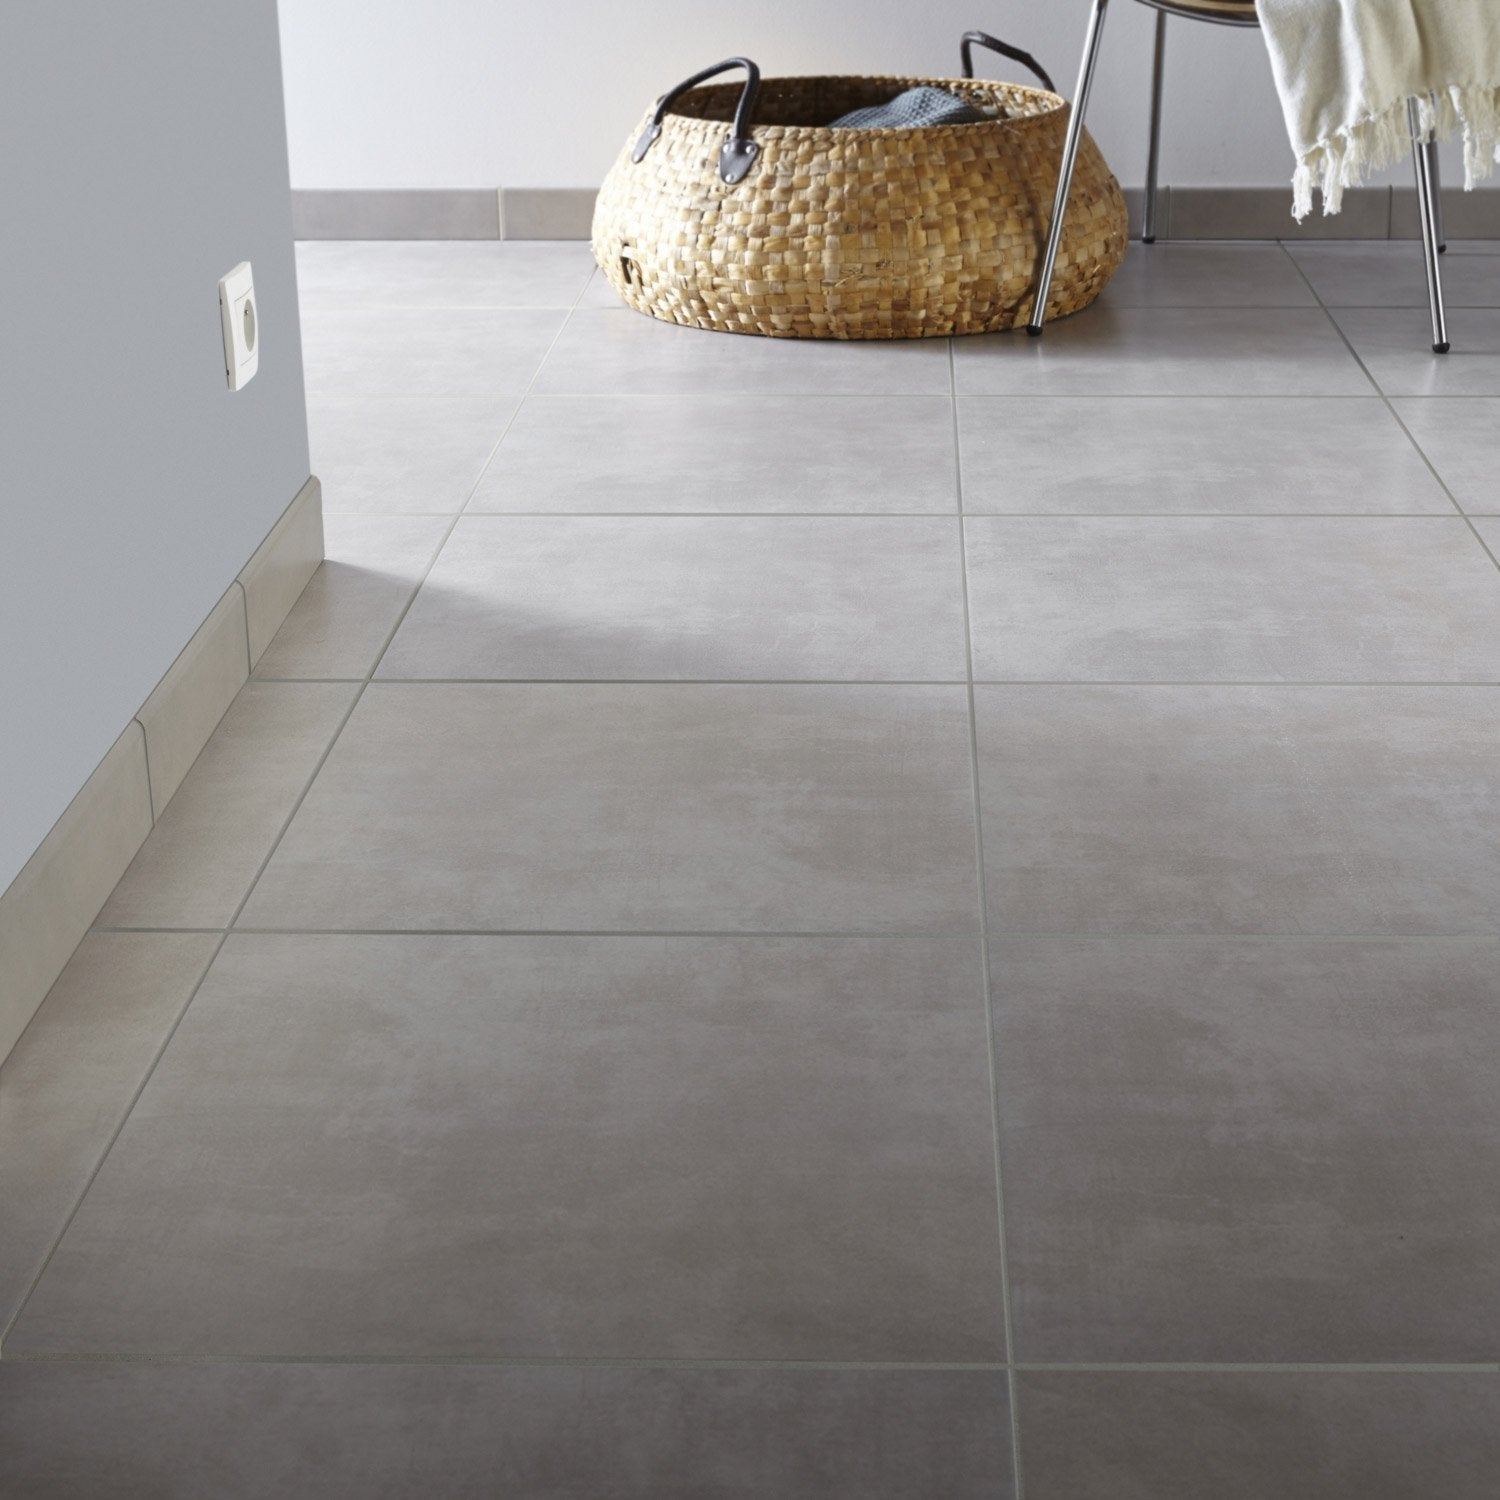 Carrelage sol et mur taupe effet b ton kiosque x for Carrelage 60x60 taupe